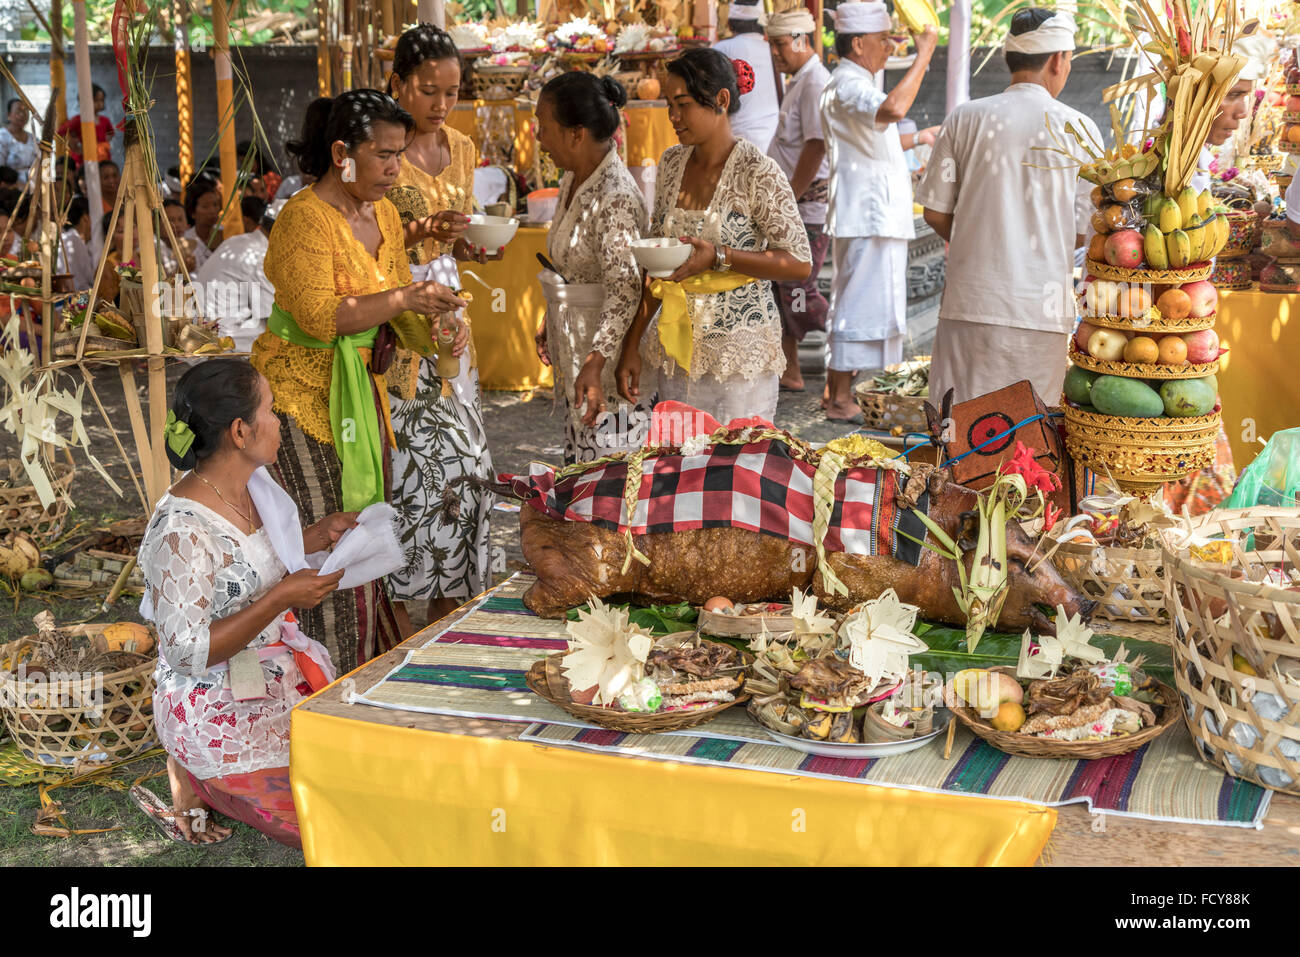 offerings at a temple ceremony in Lovina Bali, Indonesia - Stock Image